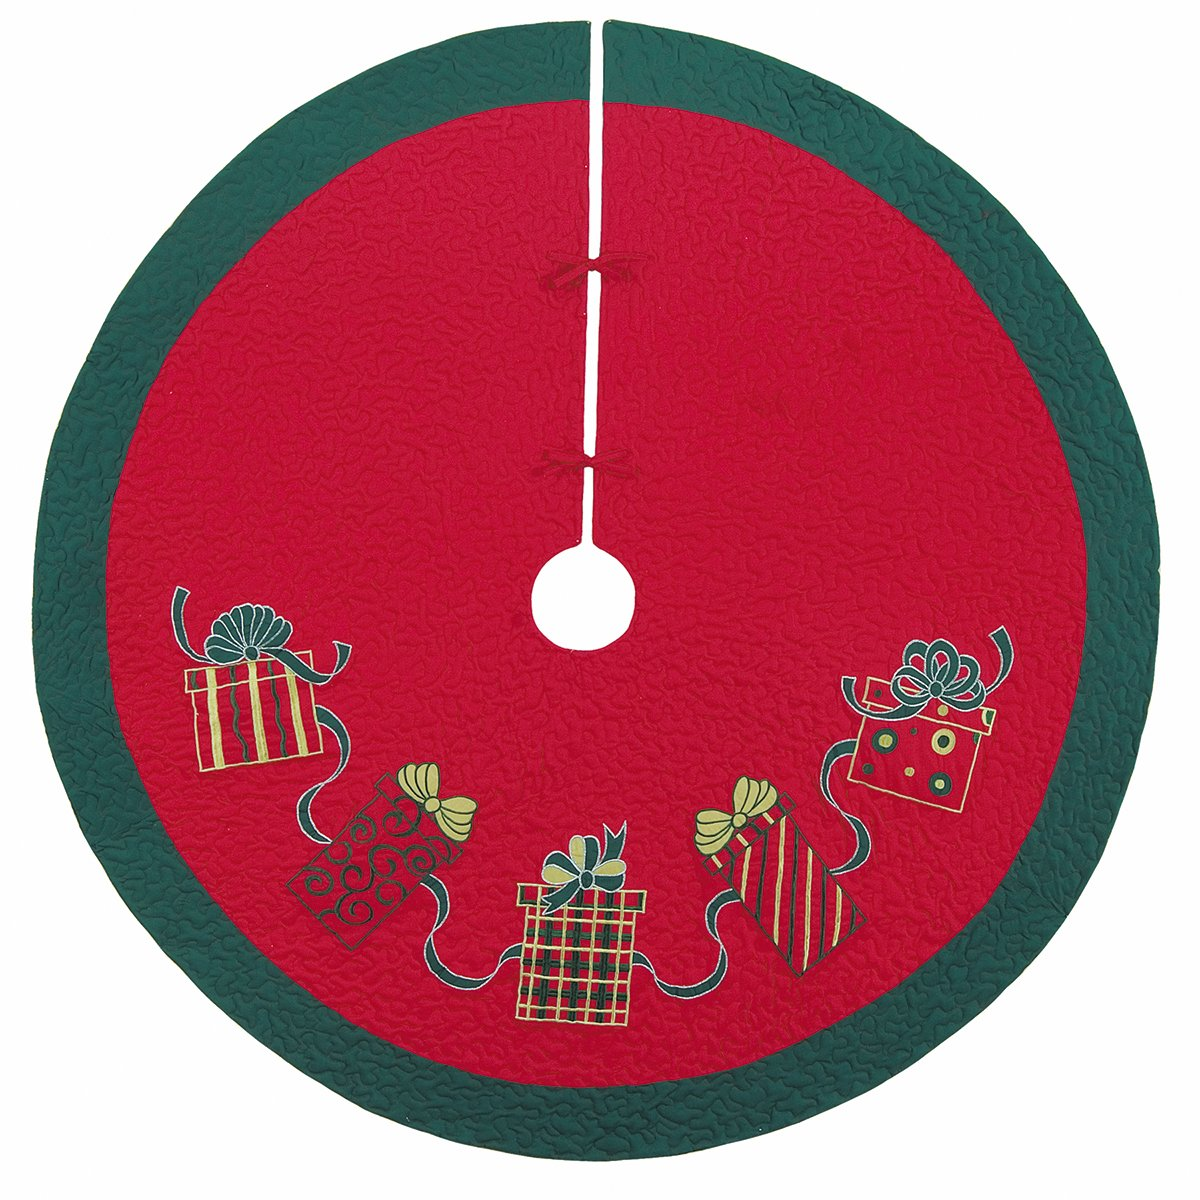 54'' Quilted Christmas Tree Skirt, Embroidered Gift Boxes Design by C&F Home (Image #1)